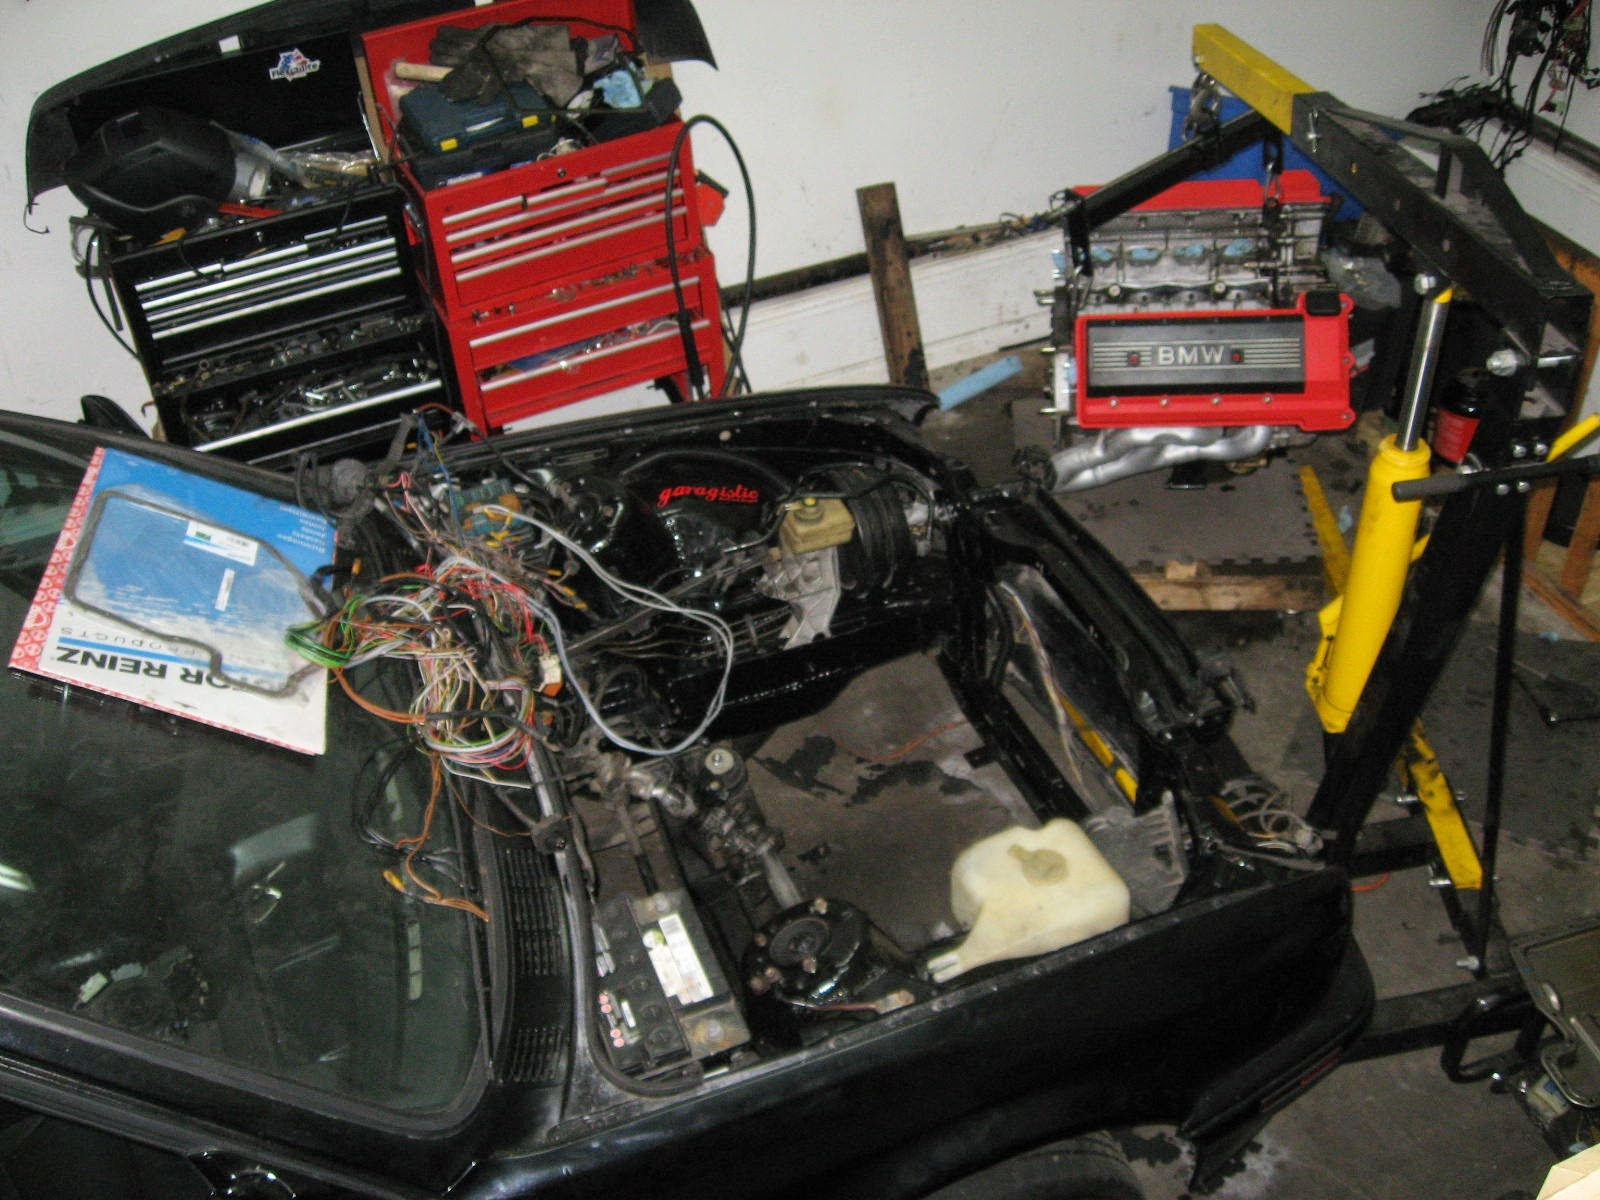 Dennys M62b44 Swap Ms2 Installed First Start Video Inside Smart Car Fuse Box Location As Well Microsquirt Wiring Diagram Archive R3vlimited Forums